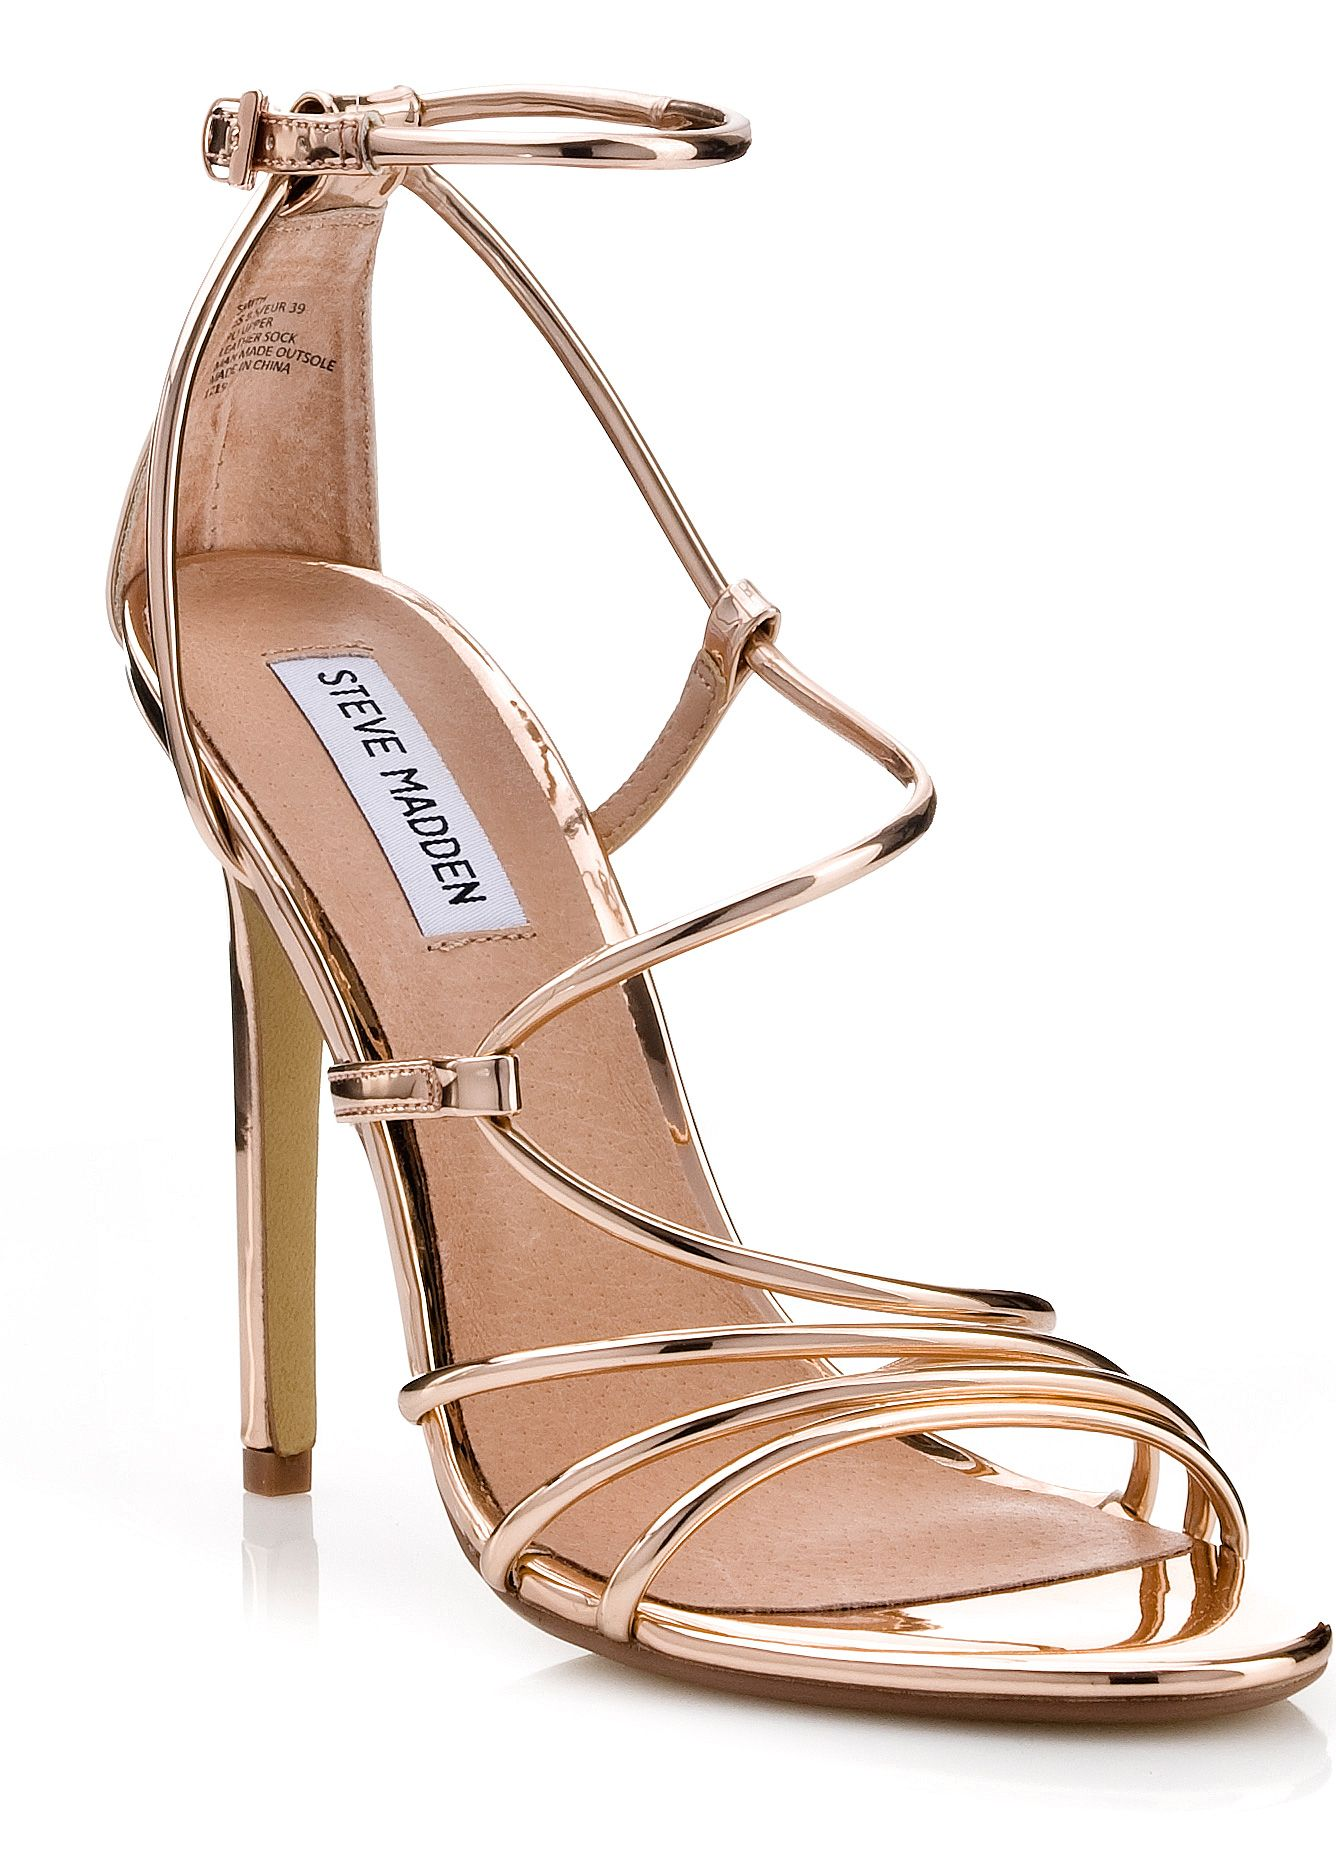 a20da026a510 Steve Madden SMITH Rose Gold How To Make Shoes